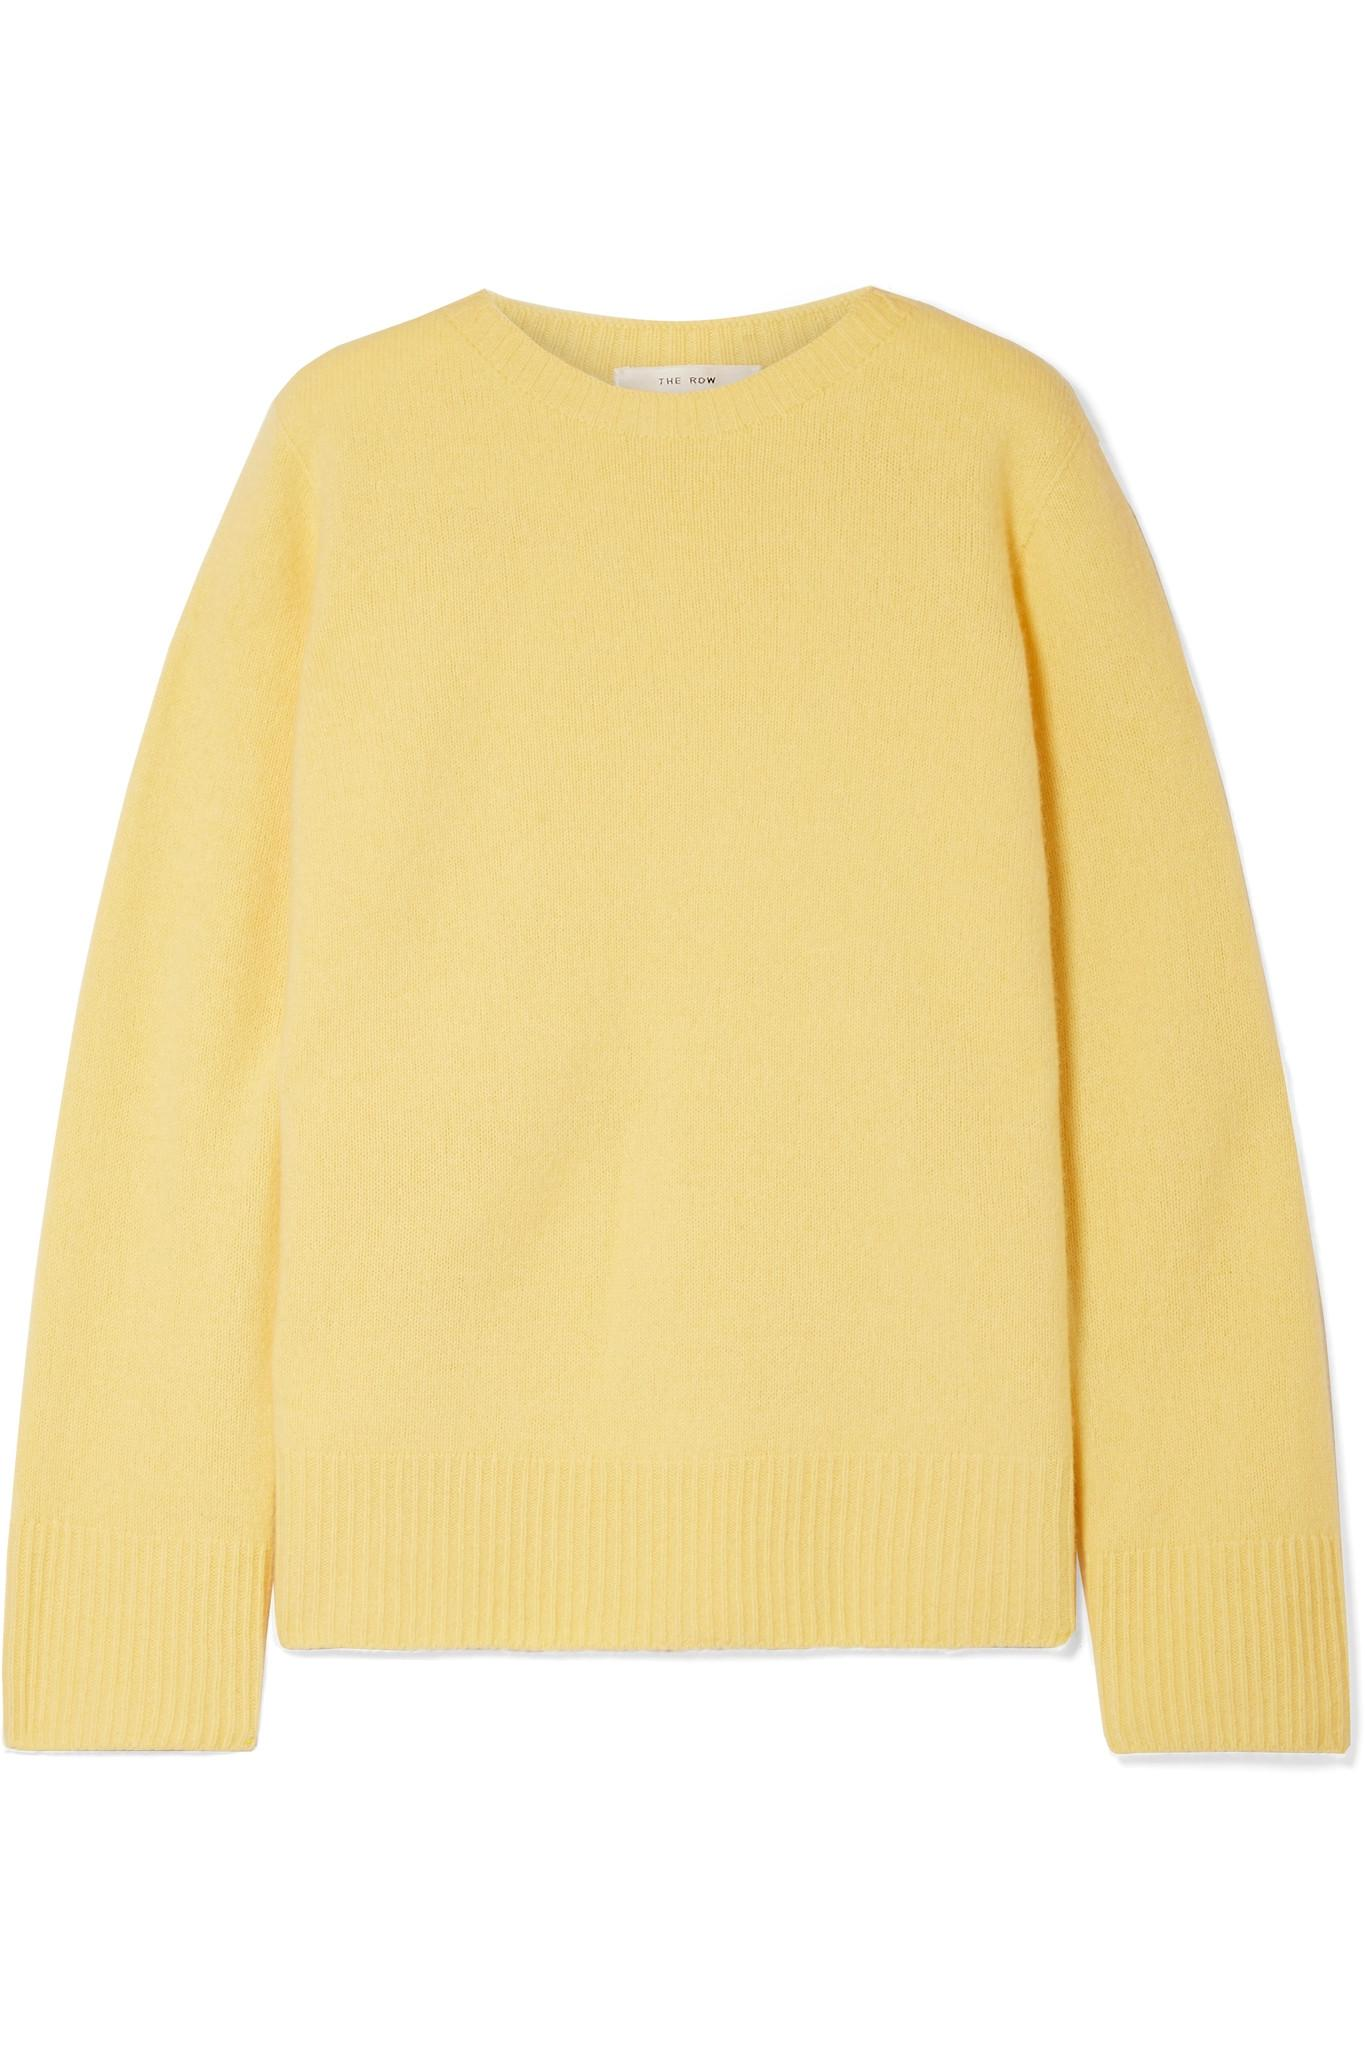 38a1fc8fc4 The Row - Yellow Sibel Oversized Wool And Cashmere-blend Sweater - Lyst.  View fullscreen